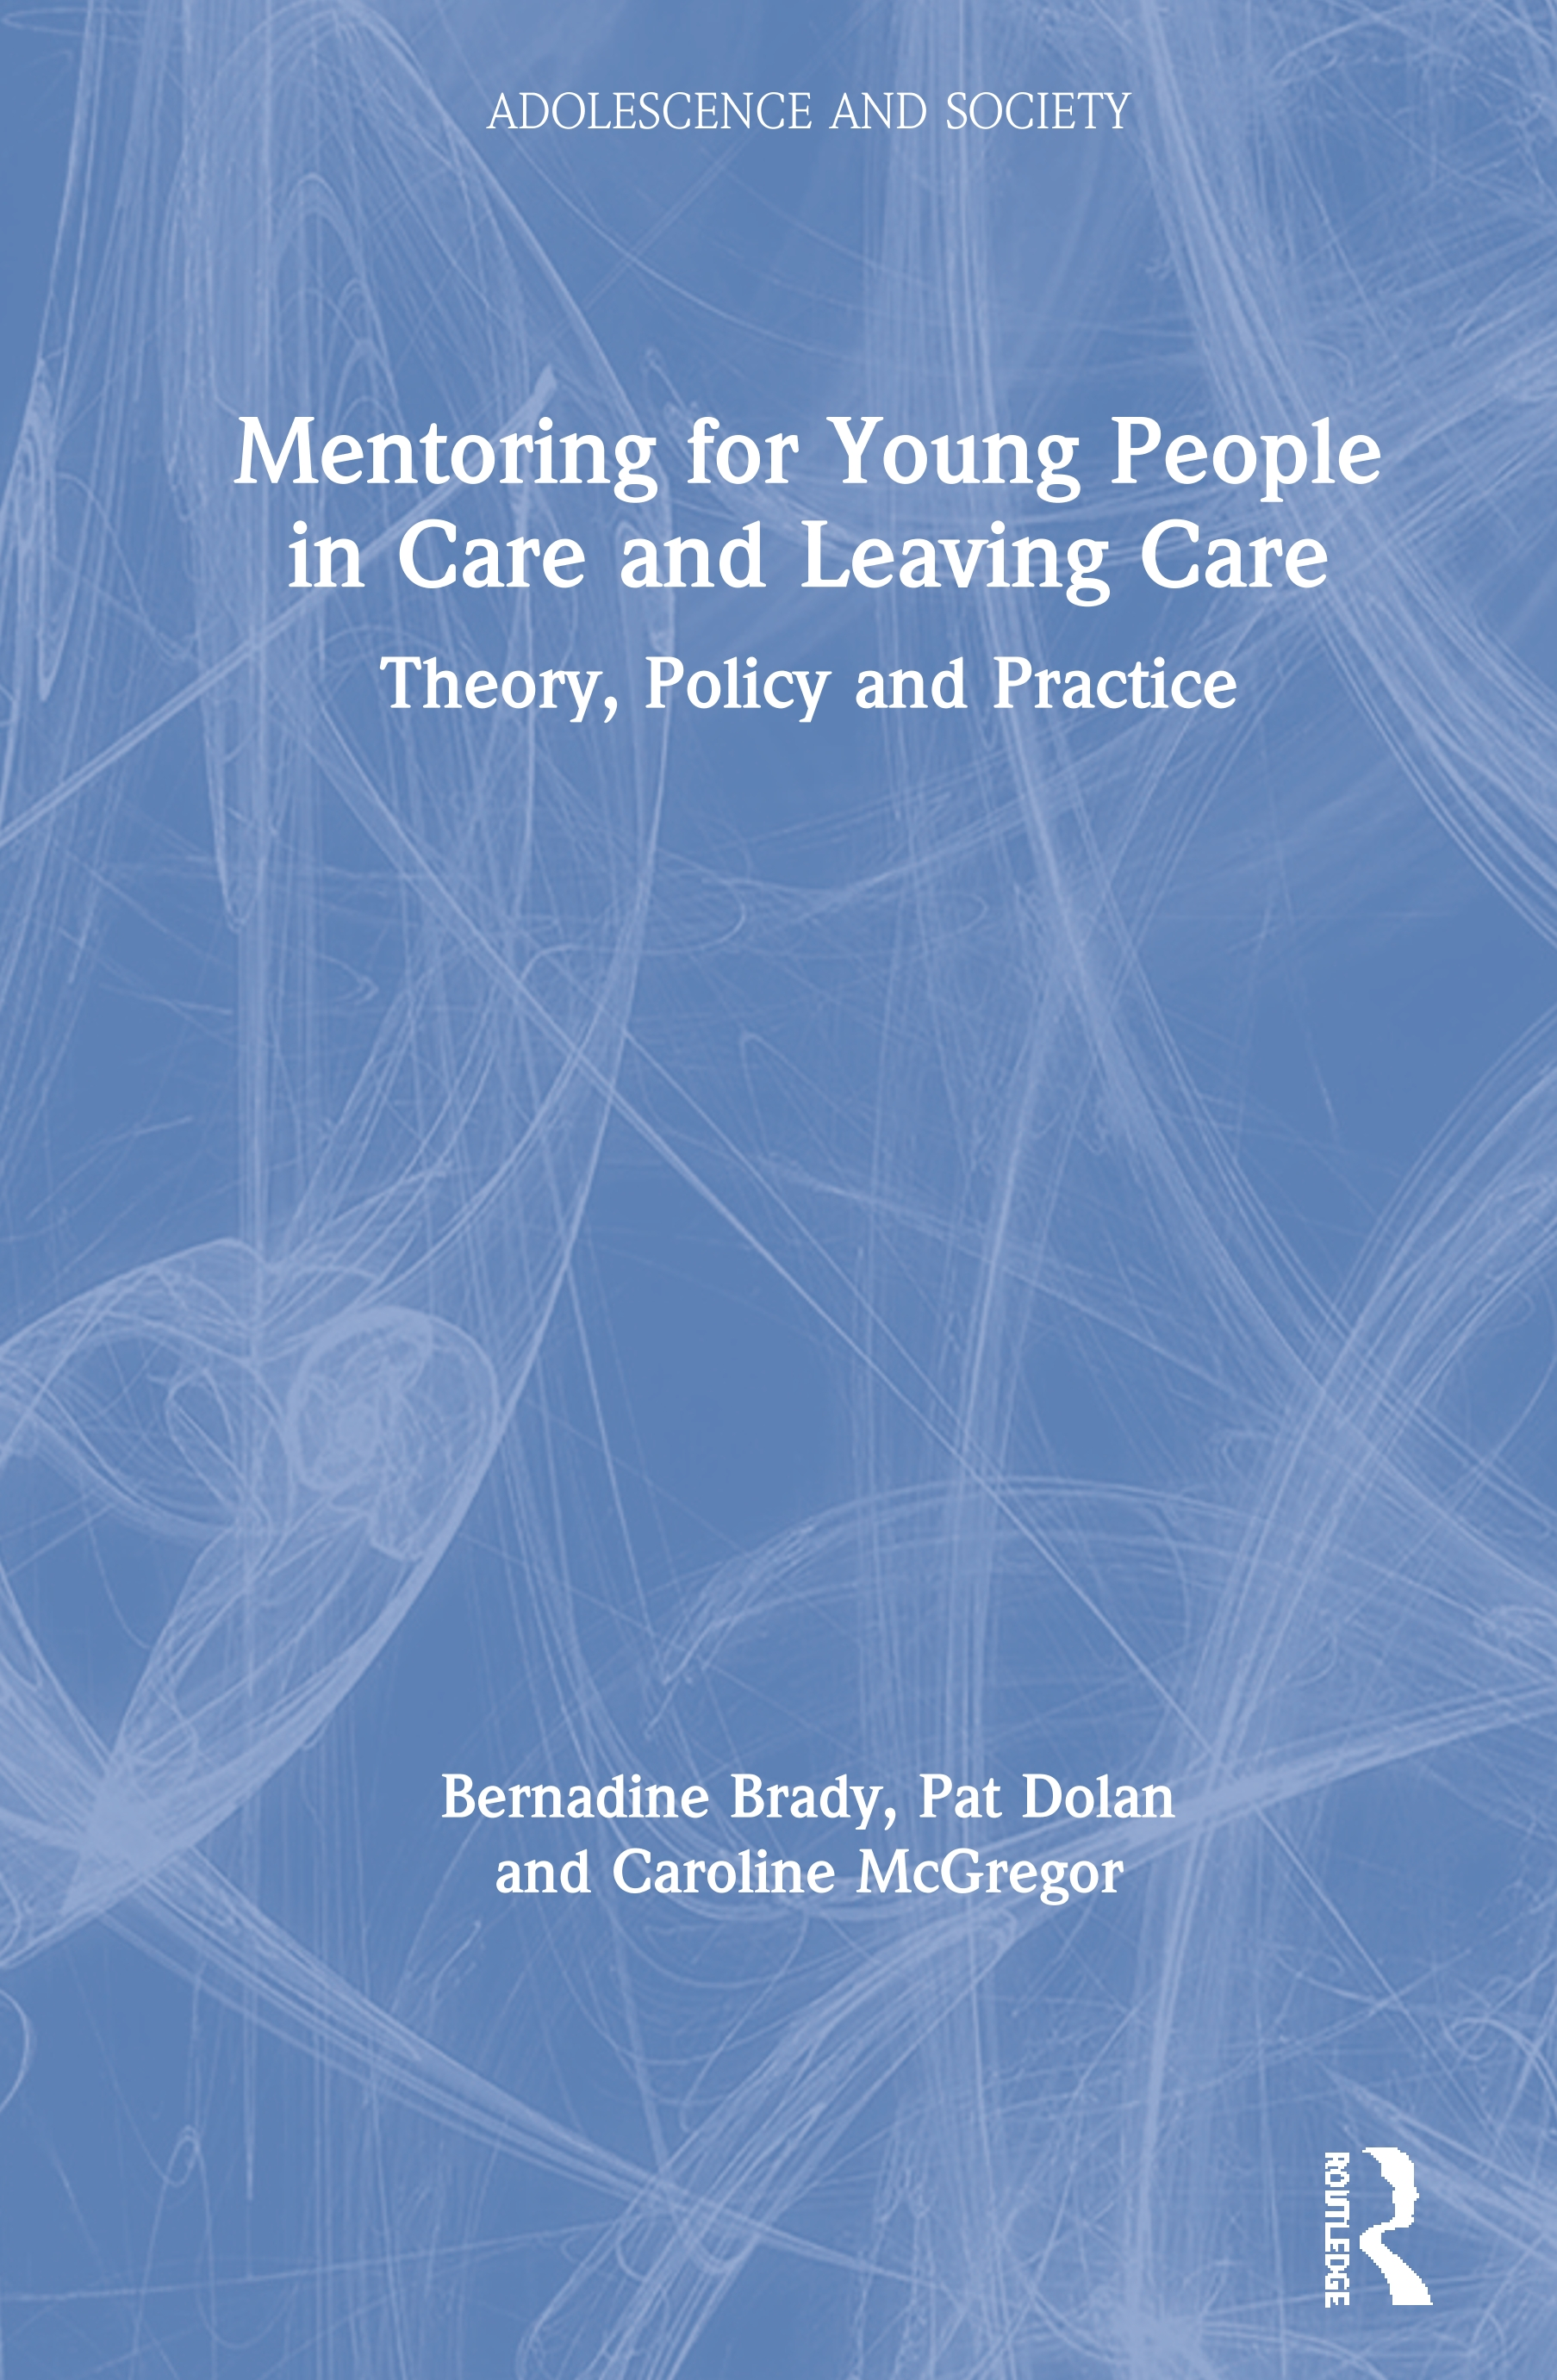 Mentoring for Young People in Care and Leaving Care: Theory, Policy and Practice book cover